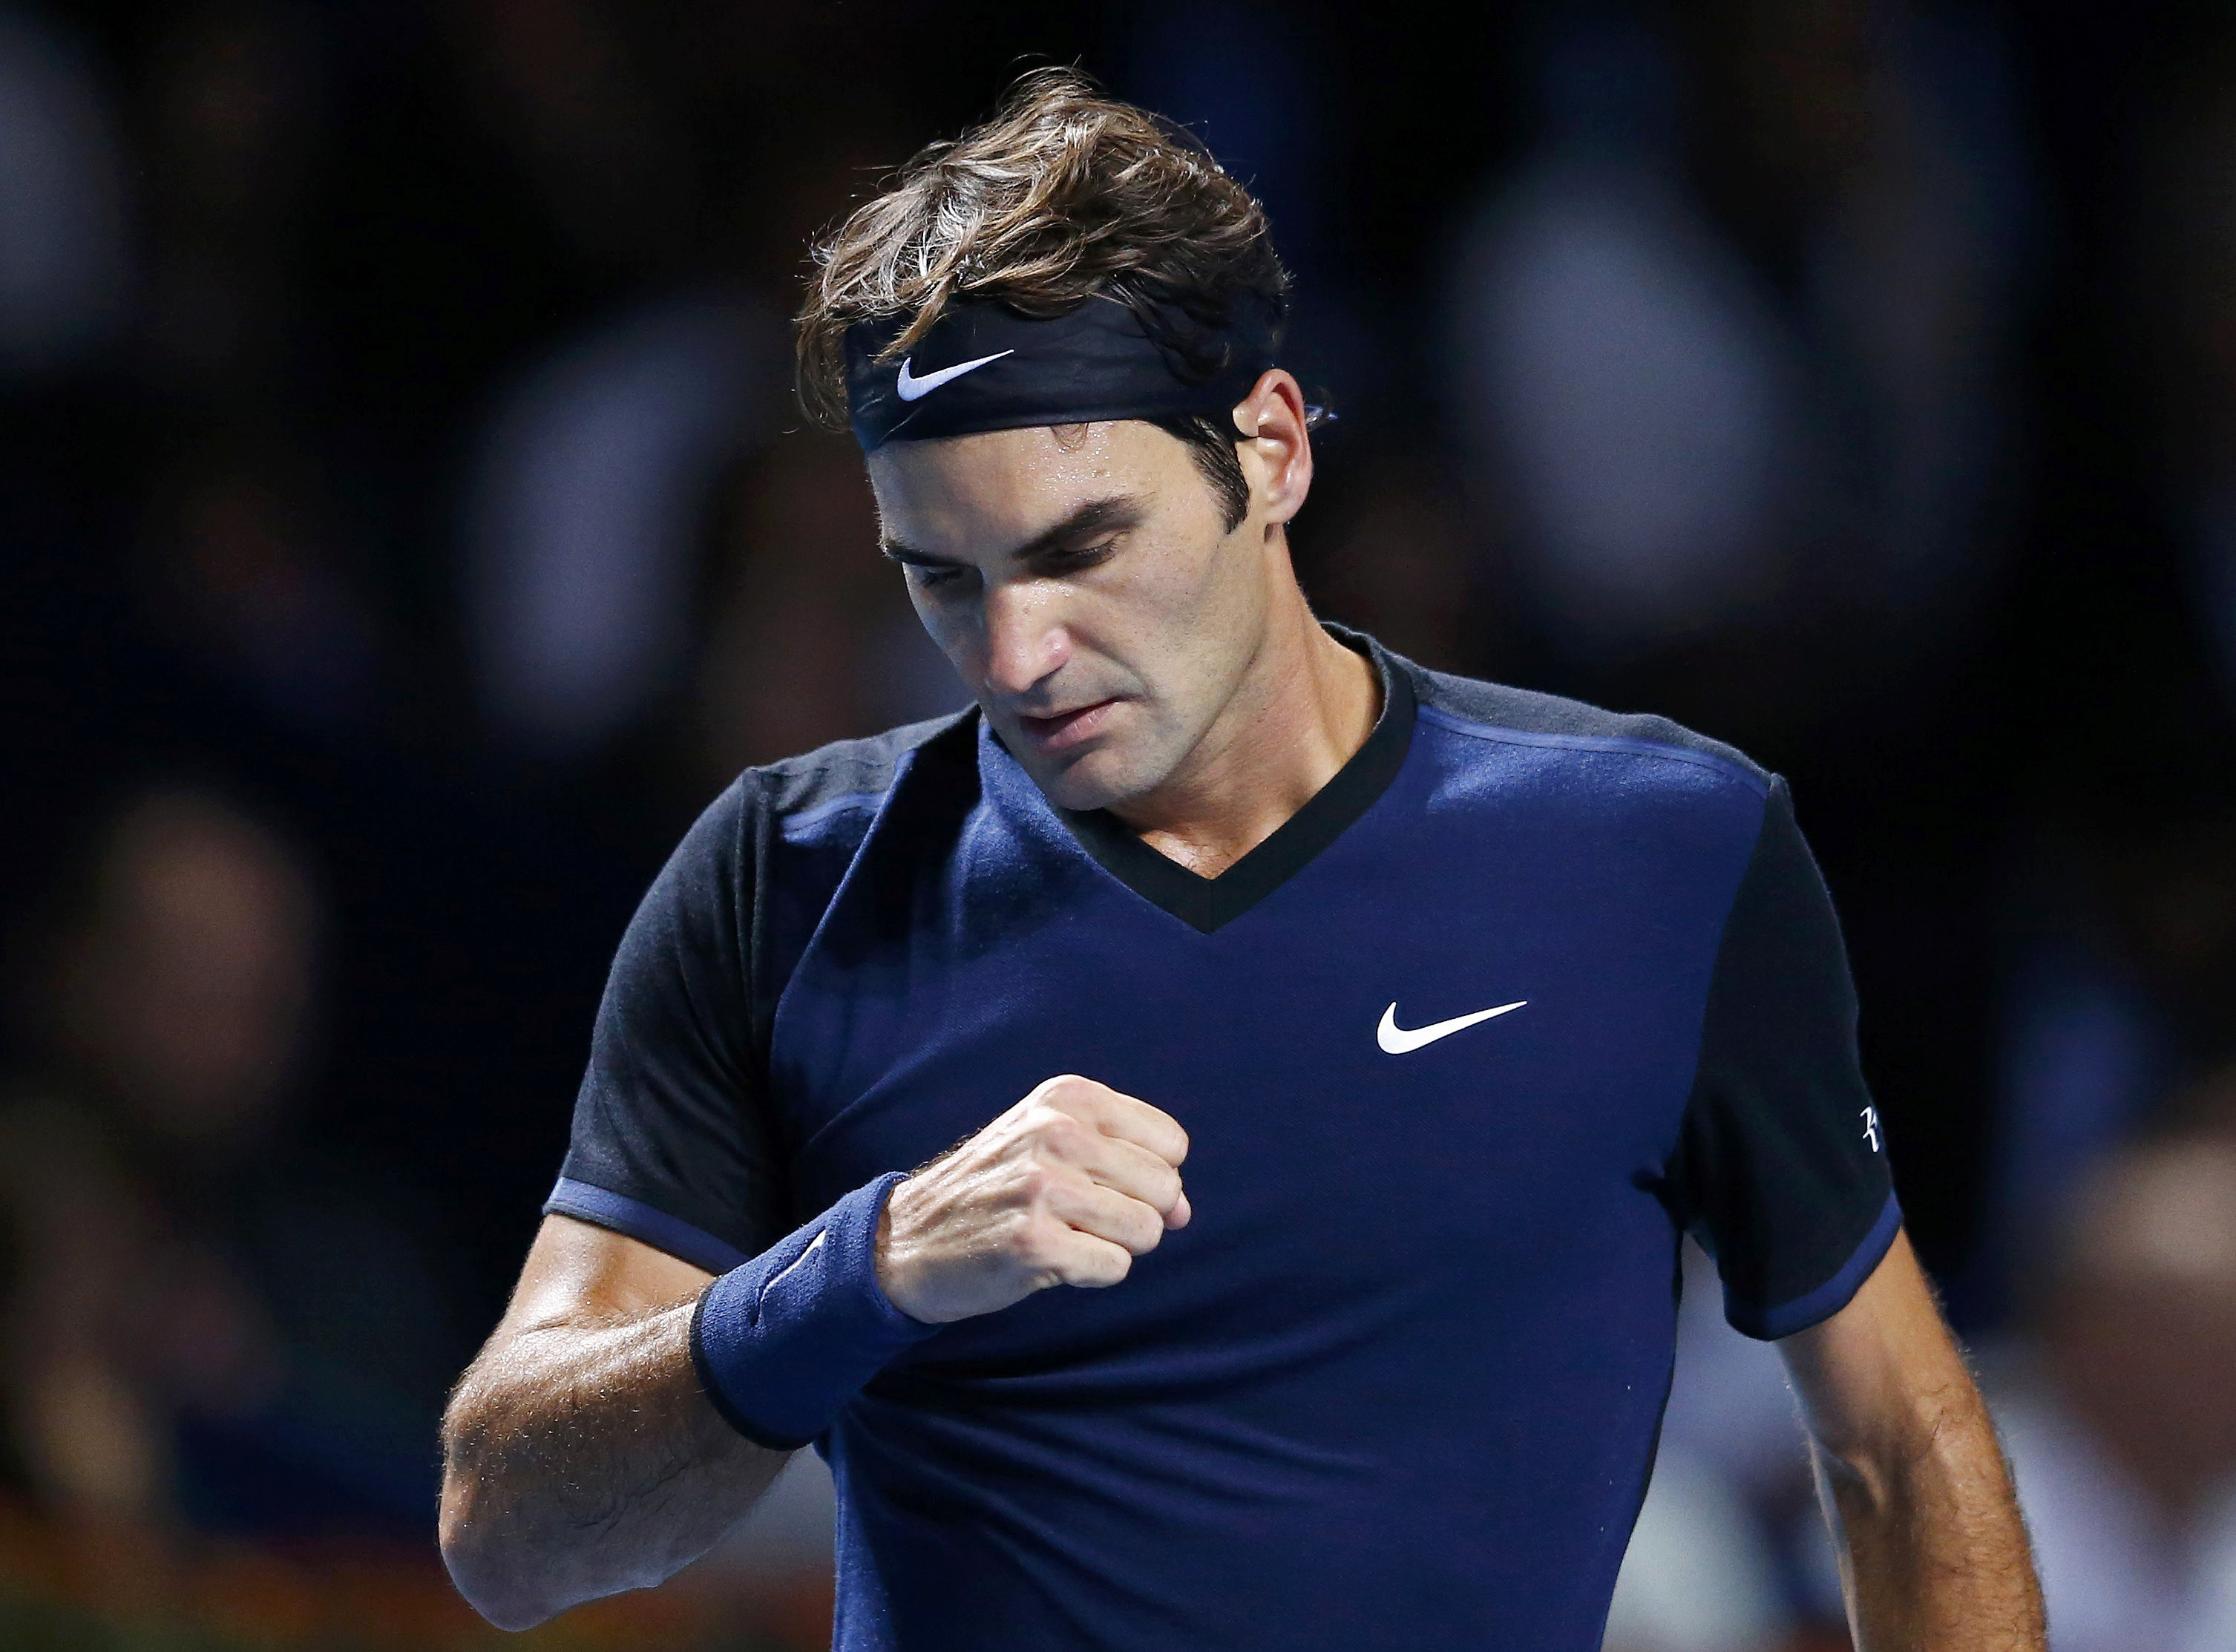 Switzerland's Roger Federer reacts during his match against Rafael Nadal of Spain at the Swiss Indoors ATP men's tennis tournament in Basel, Switzerland November 1, 2015. Photo: Reuters